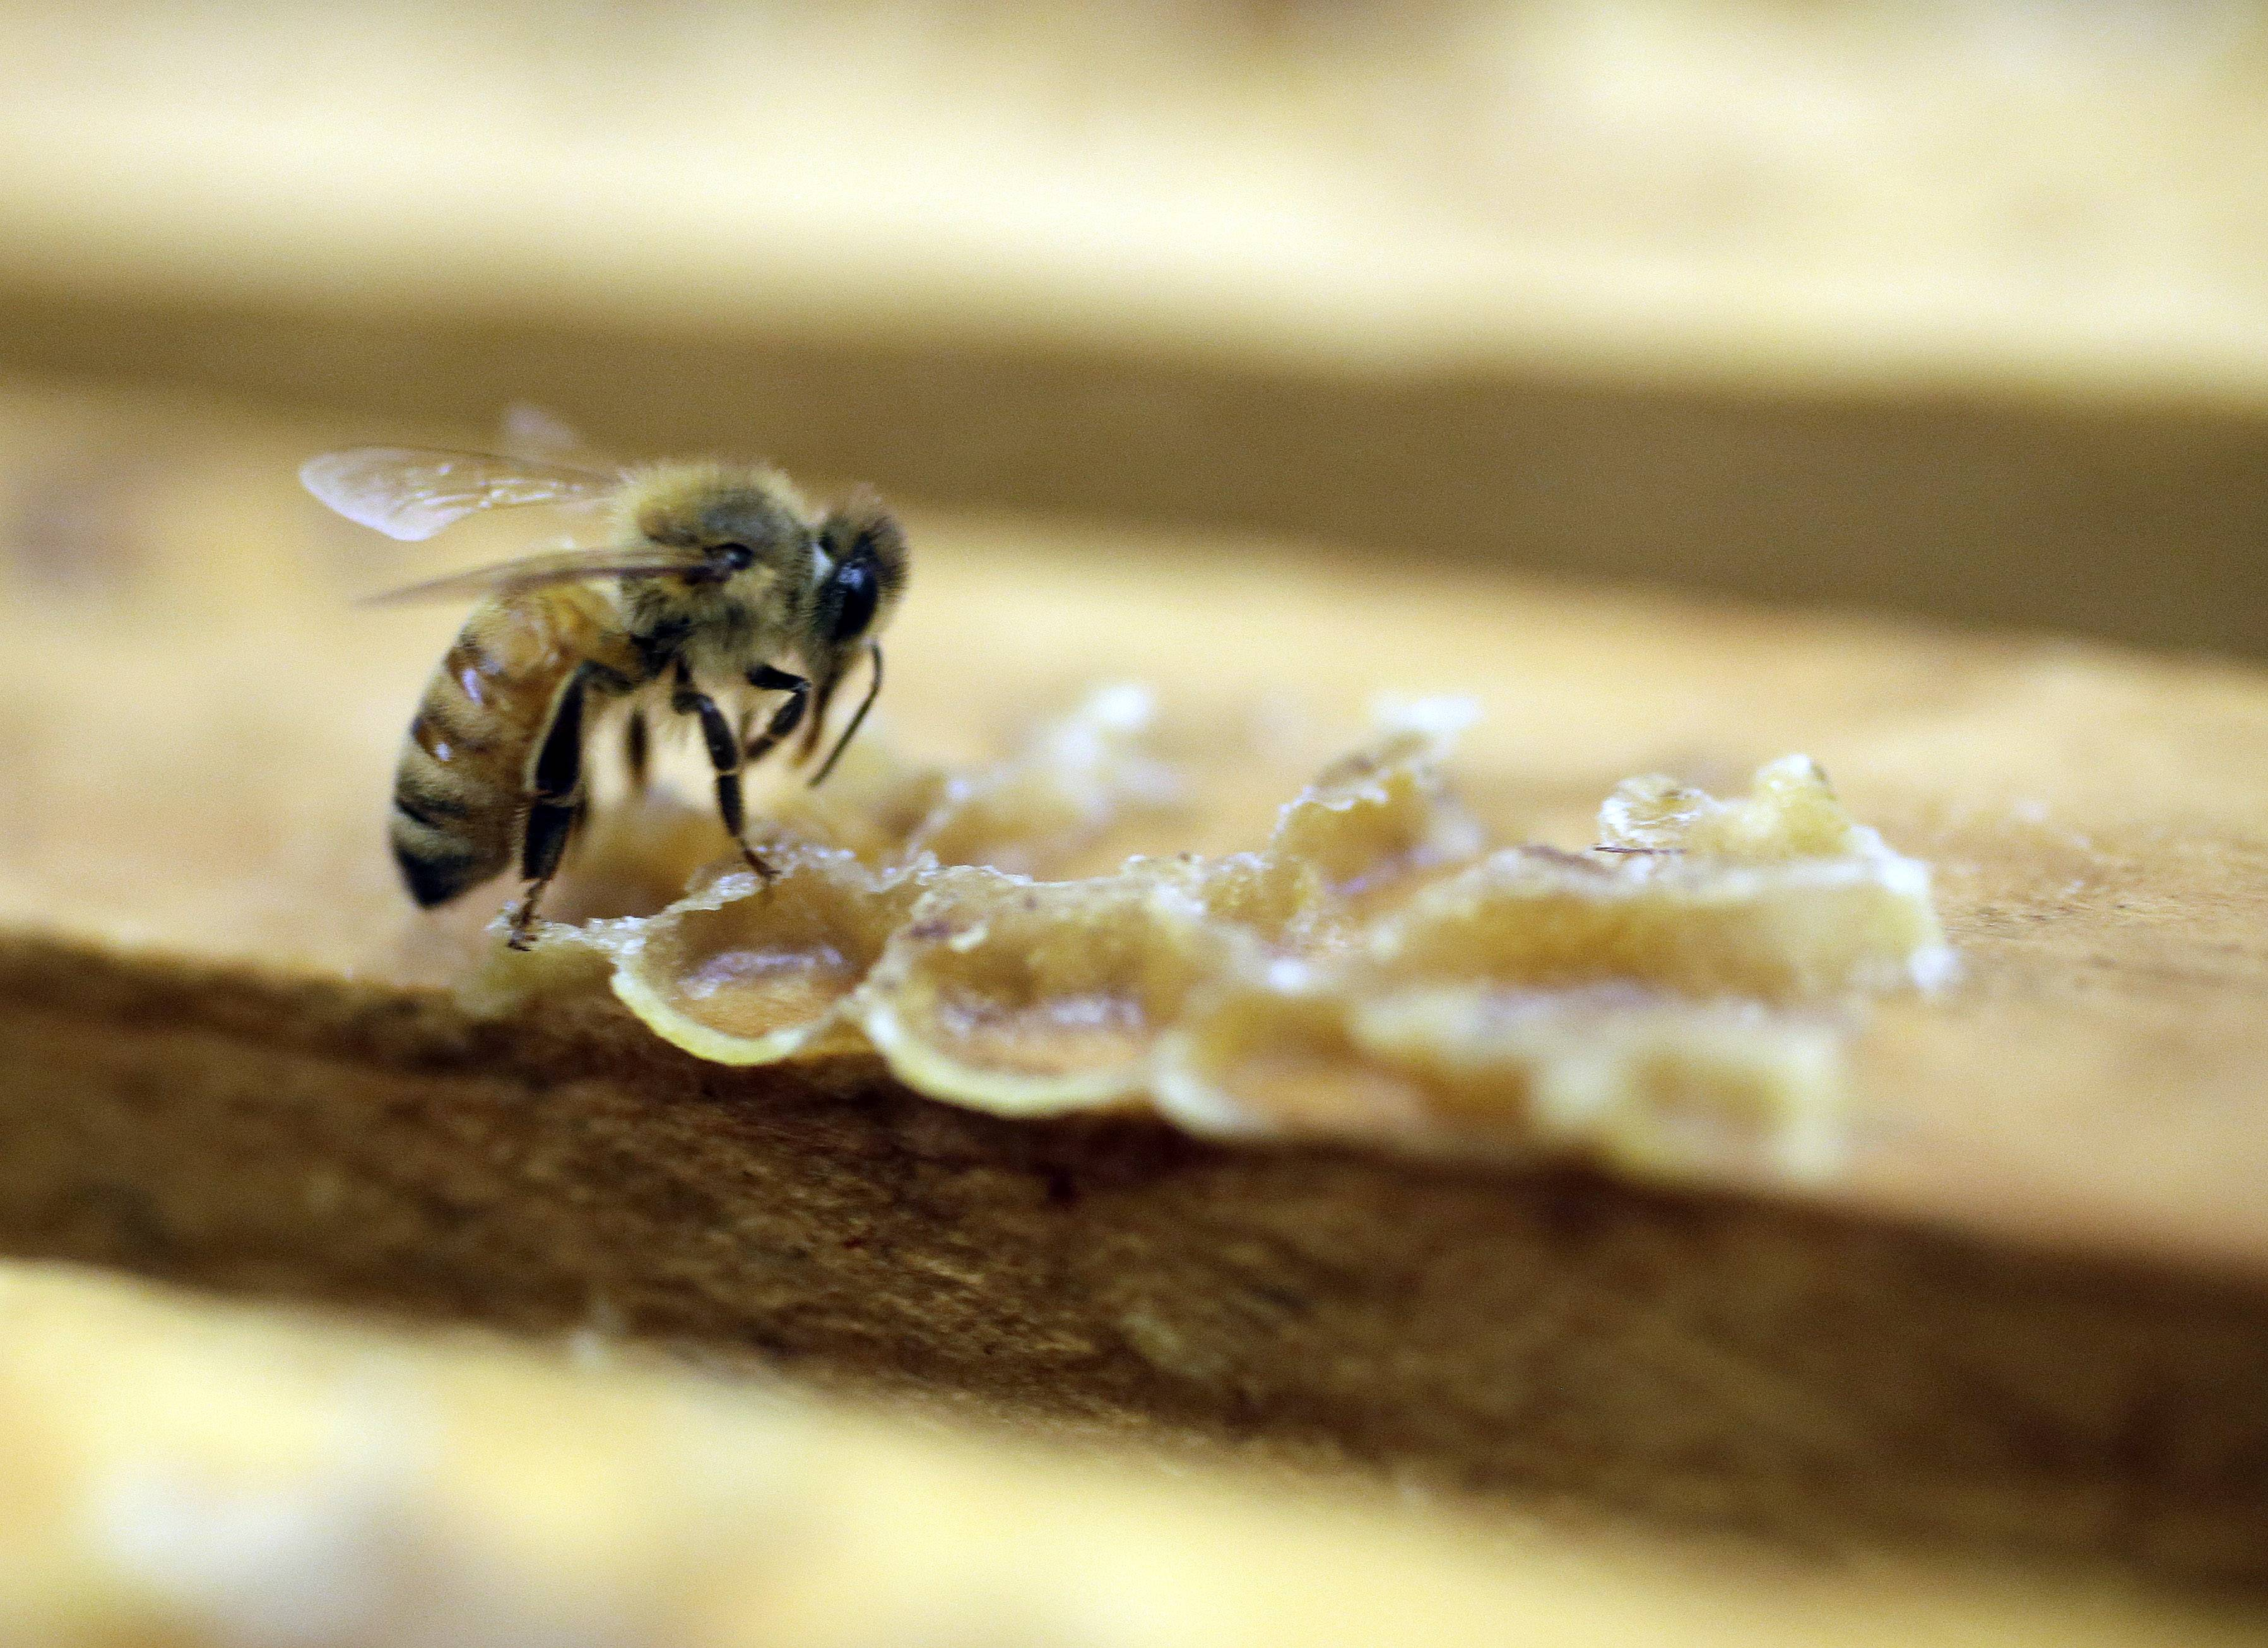 California's record drought hasn't been sweet to honeybees, and it's creating a sticky situation for beekeepers and honey buyers.